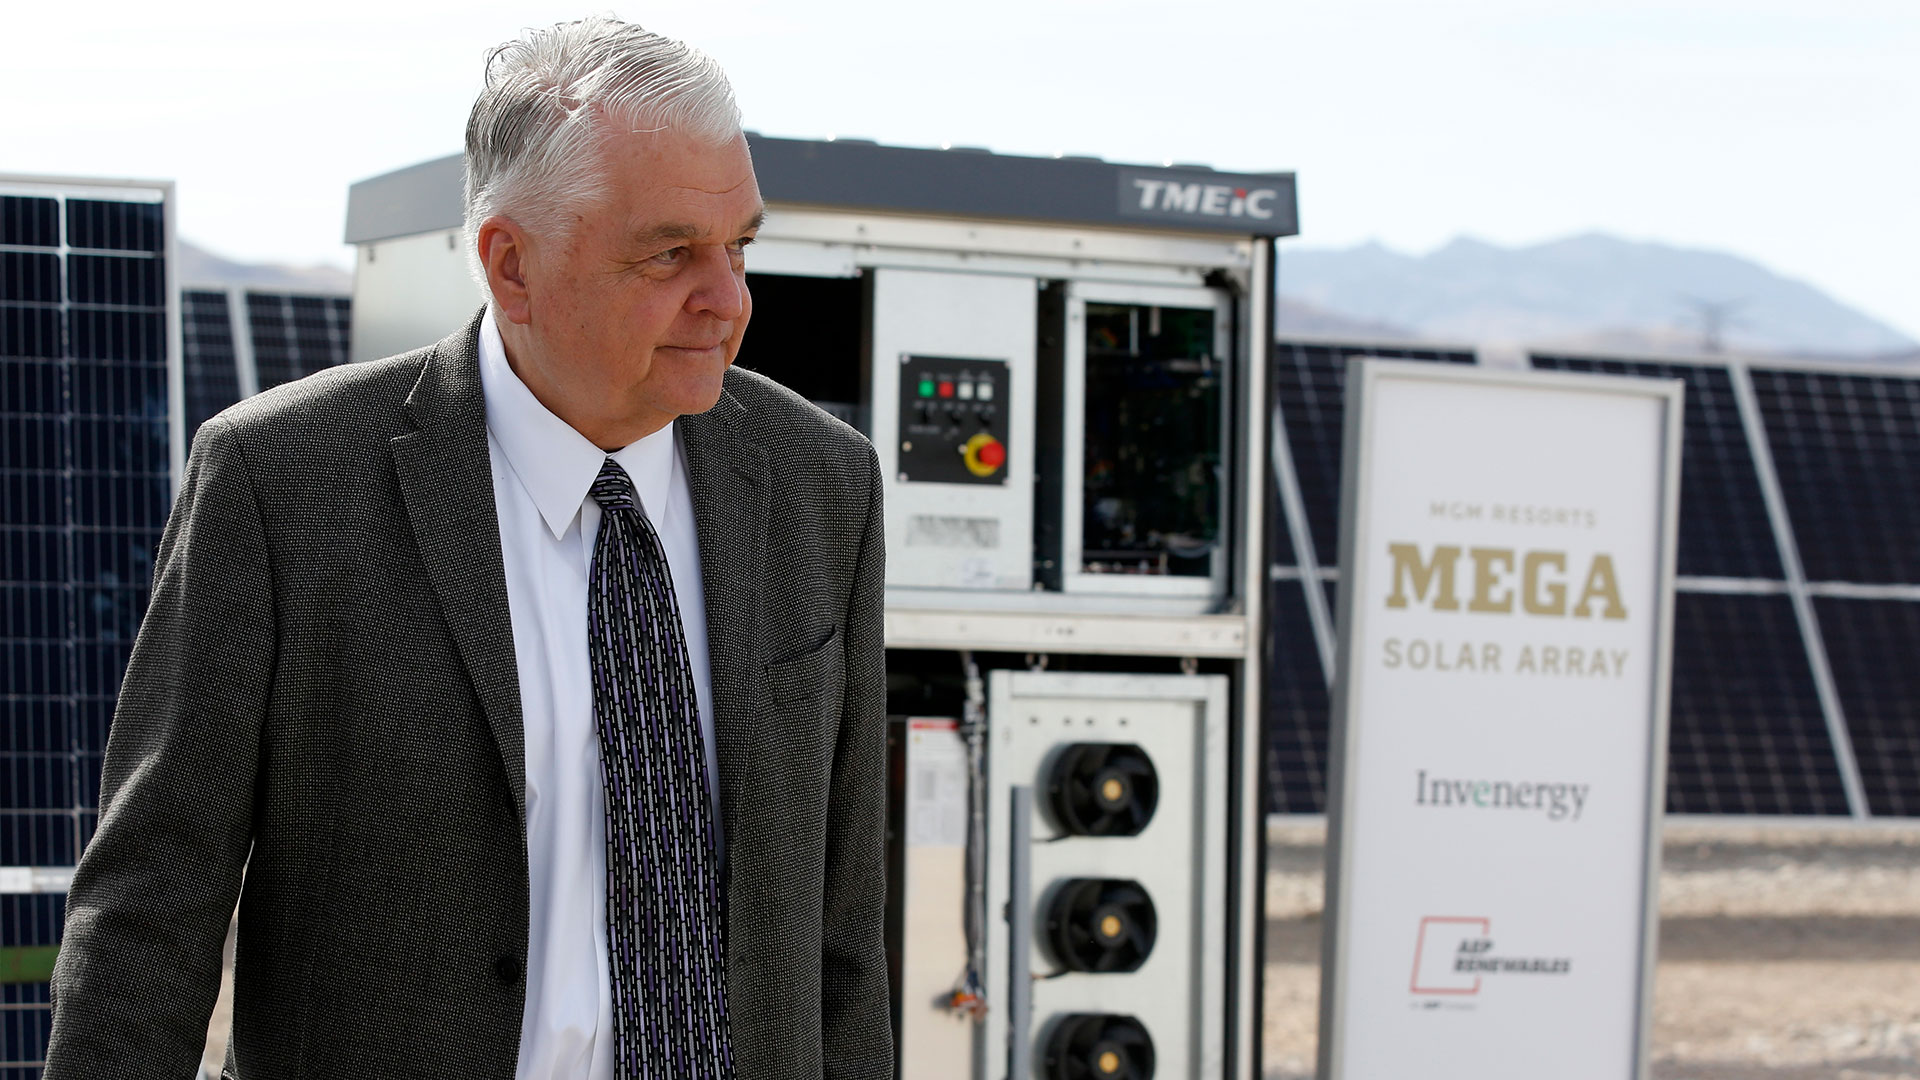 Nevada Governor Steve Sisolak attends the launch of MGM Resorts 100MW solar array.